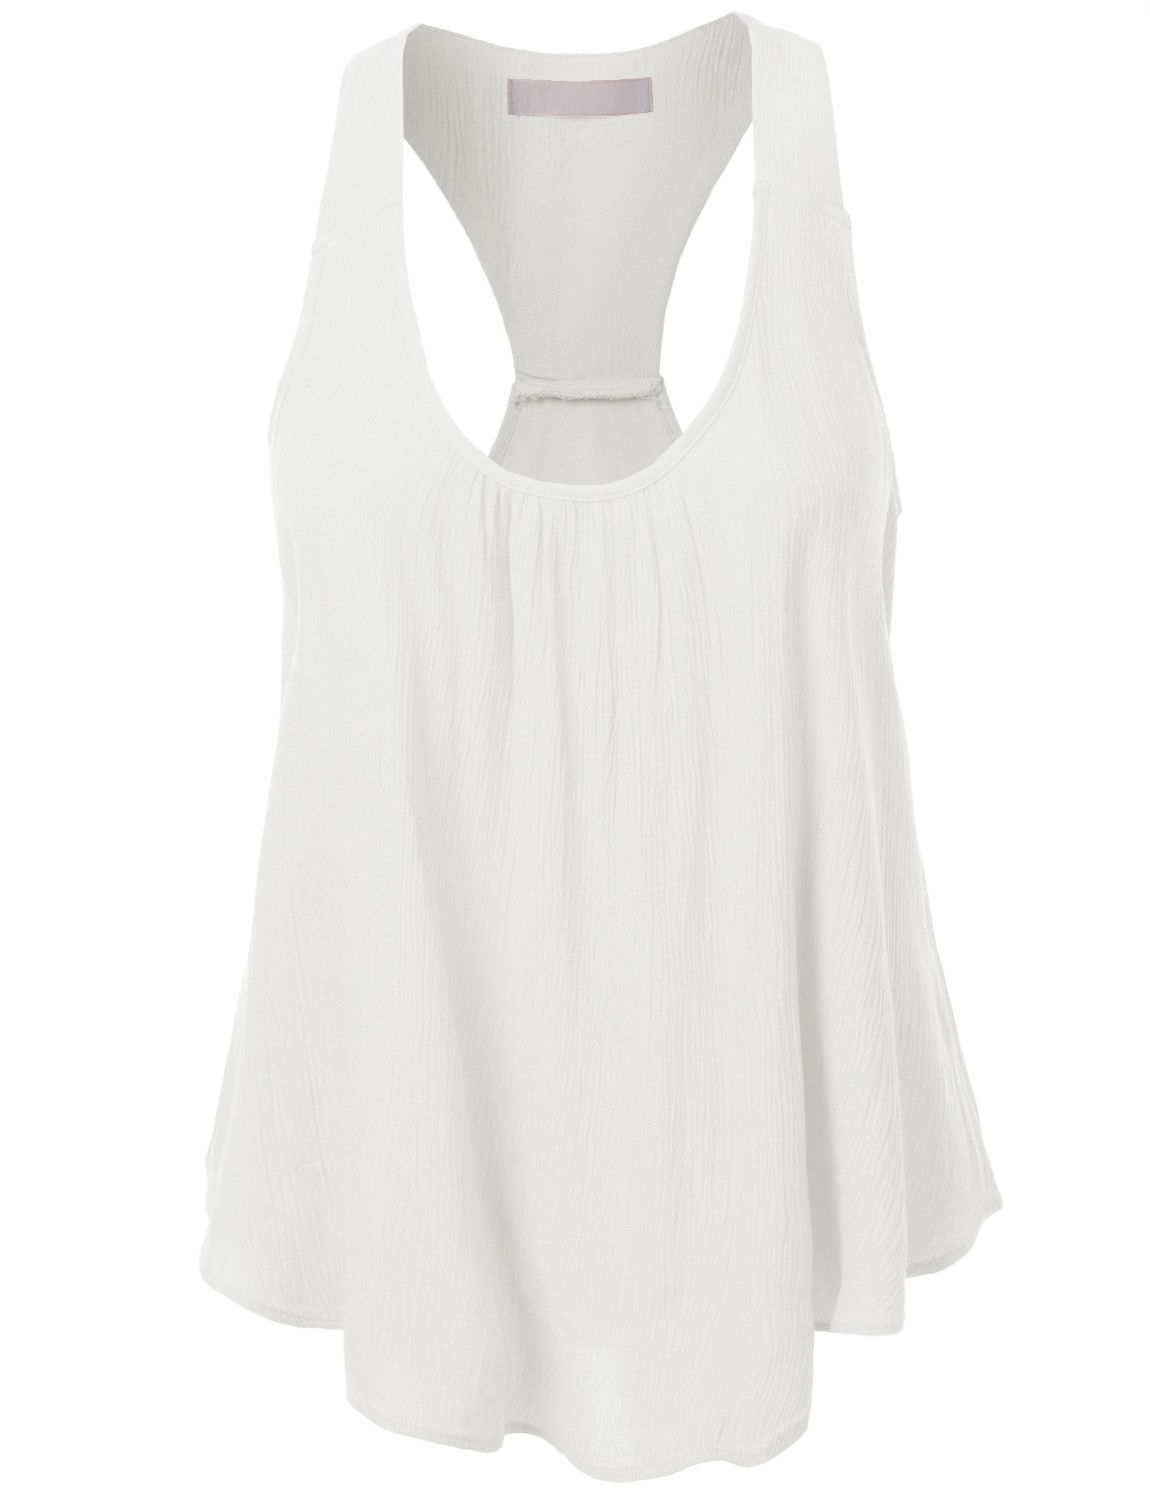 d8c5d4574e7501 This flowy solid bohemian racerback tank top is a essential for this  season! It s perfect